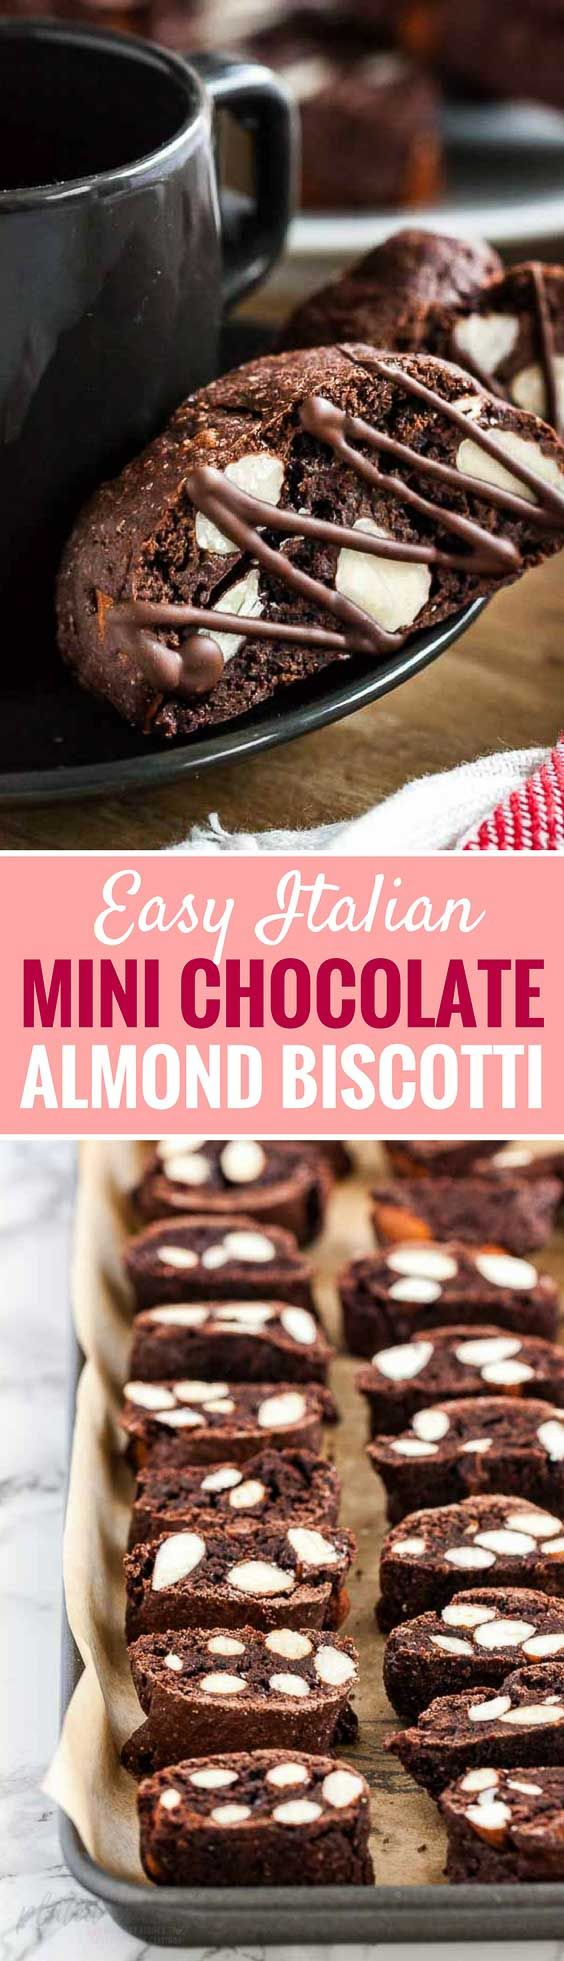 These Mini Chocolate Almond Biscotti are crunchy, studded with almonds, and easy to make from scratch. A perfect little after-dinner dessert that tastes delicious dunked into hot chocolate or coffee. You will love these Italian almond cookies! #Cookies #ChristmasCookies #Biscotti #ChocolateCookies